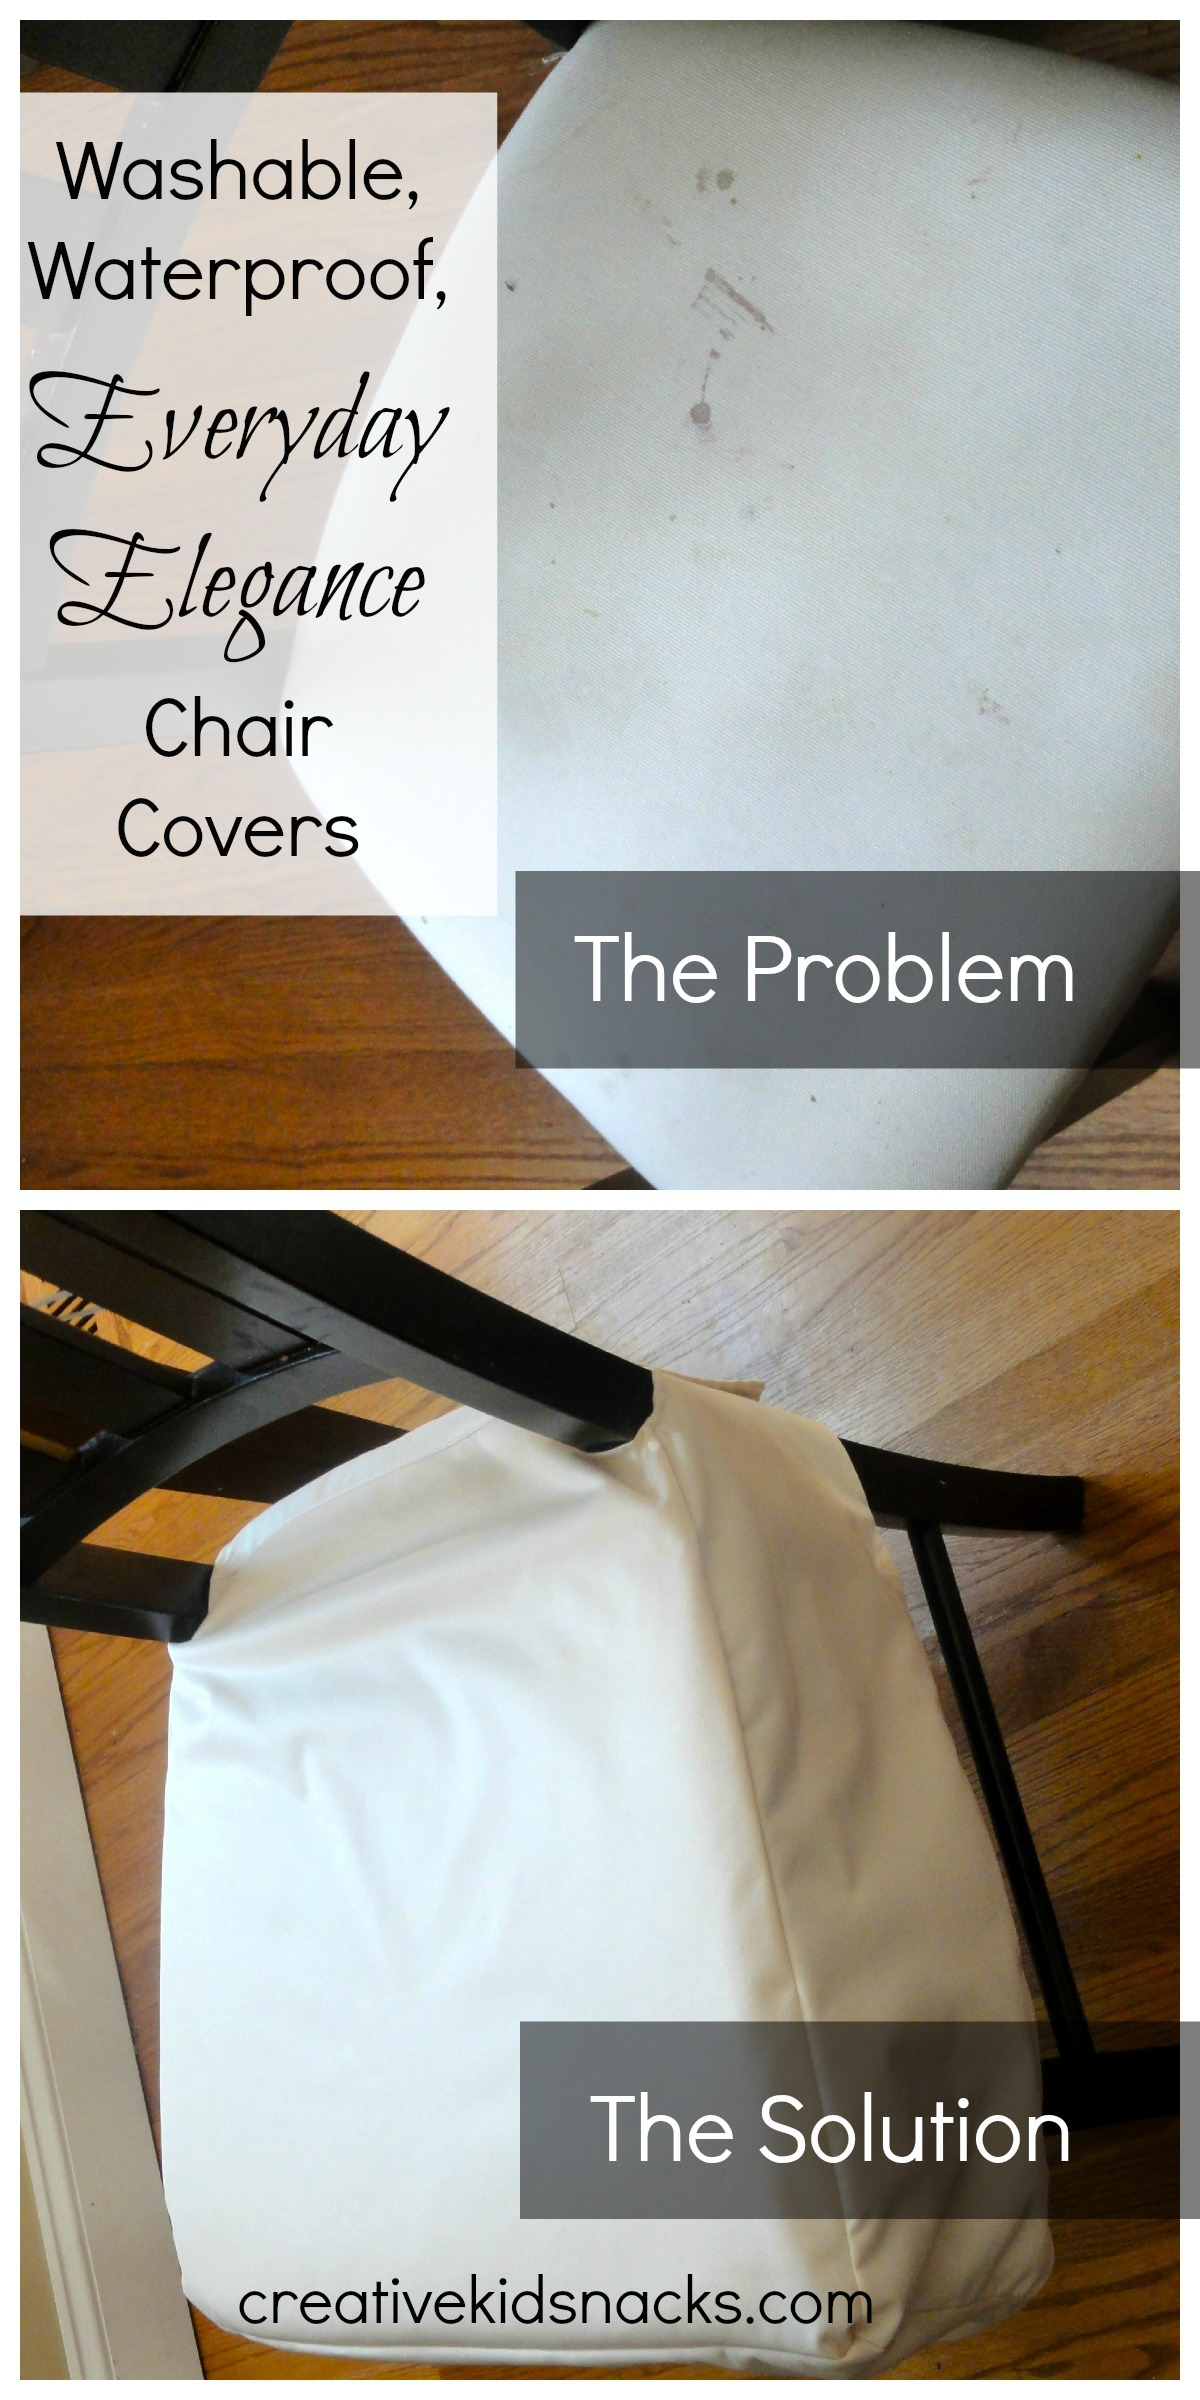 Vive Vita Everyday Elegance Chair Covers Review and Giveaway : Chair Pinnable from www.creativekidsnacks.com size 1200 x 2400 jpeg 525kB